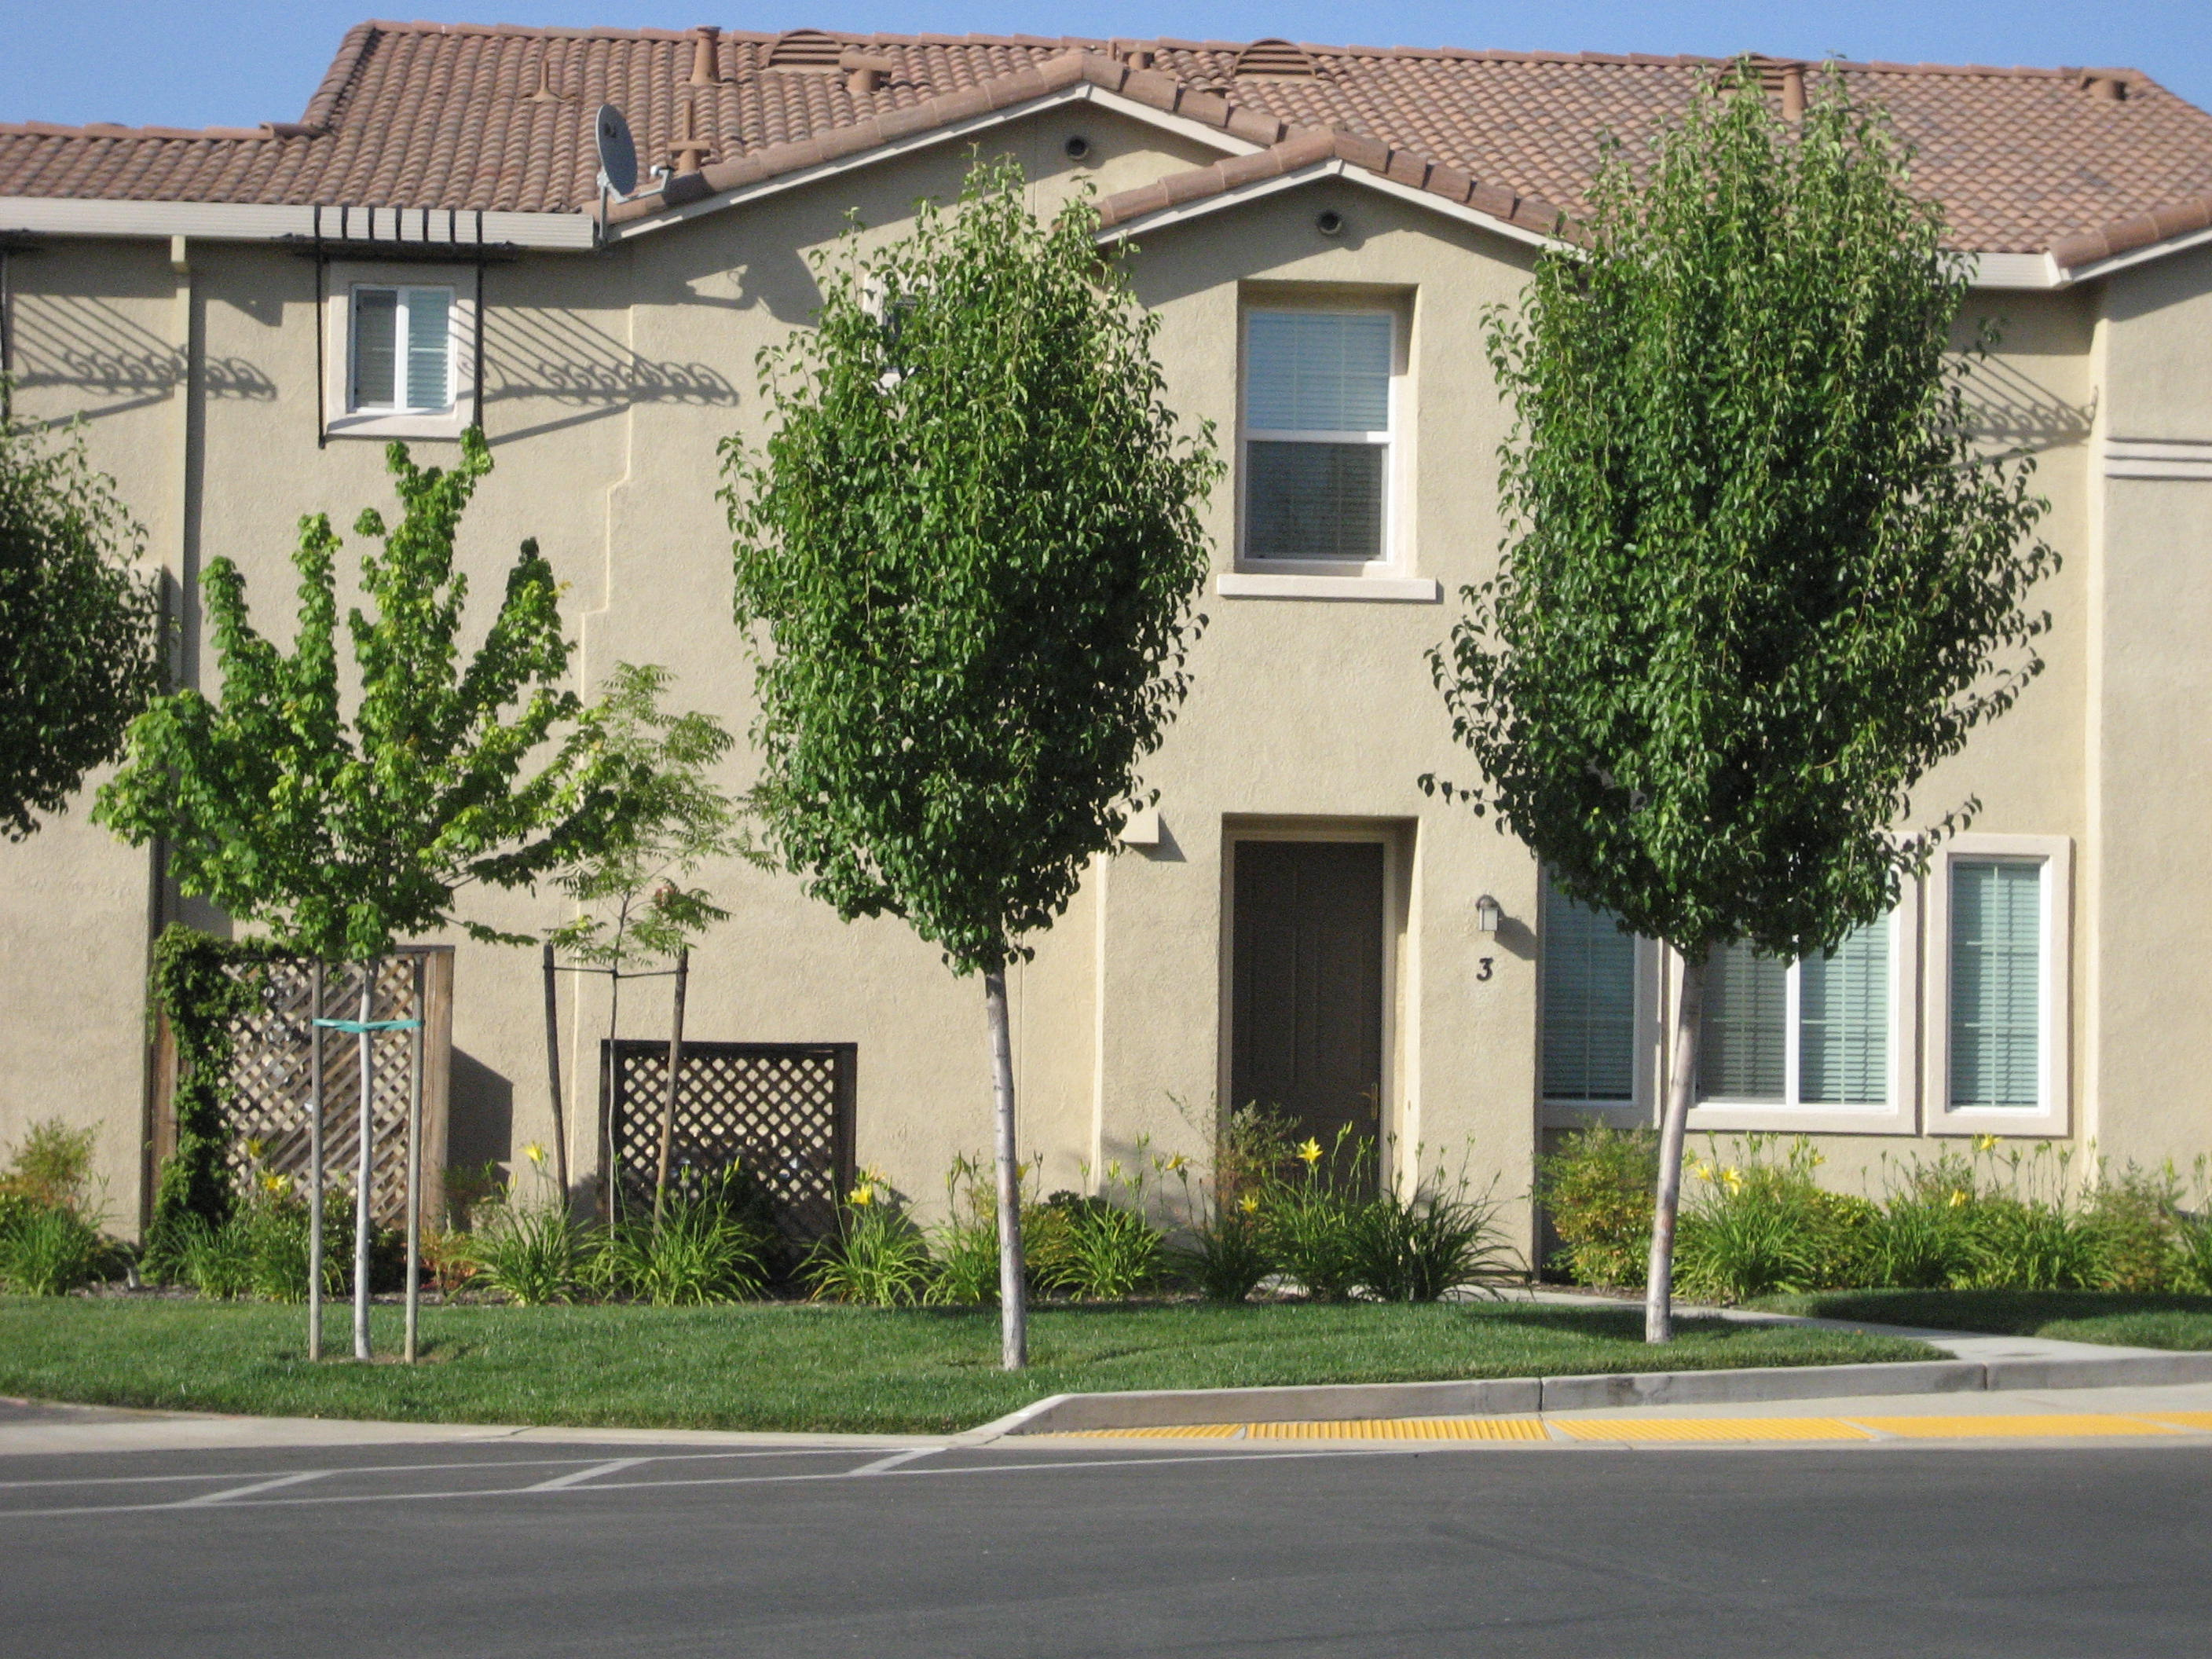 Sierra View Cir,Lincoln CA 95648 **RENTED**